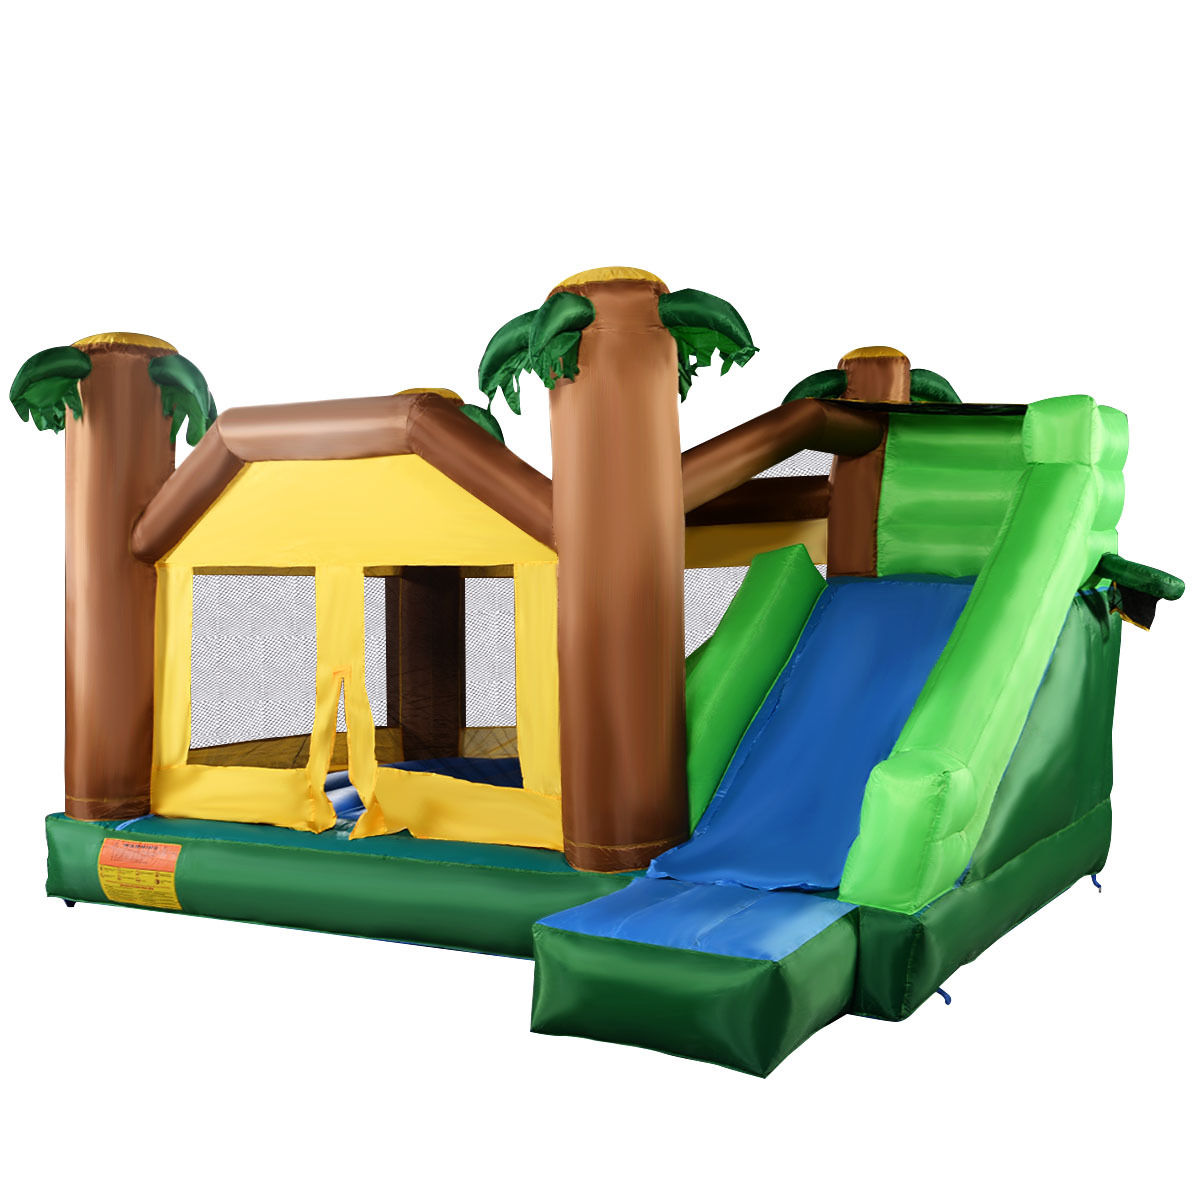 Costway Inflatable Moonwalk Jungle Bounce House Jumper Bouncy Jump Bouncer Castle by Costway